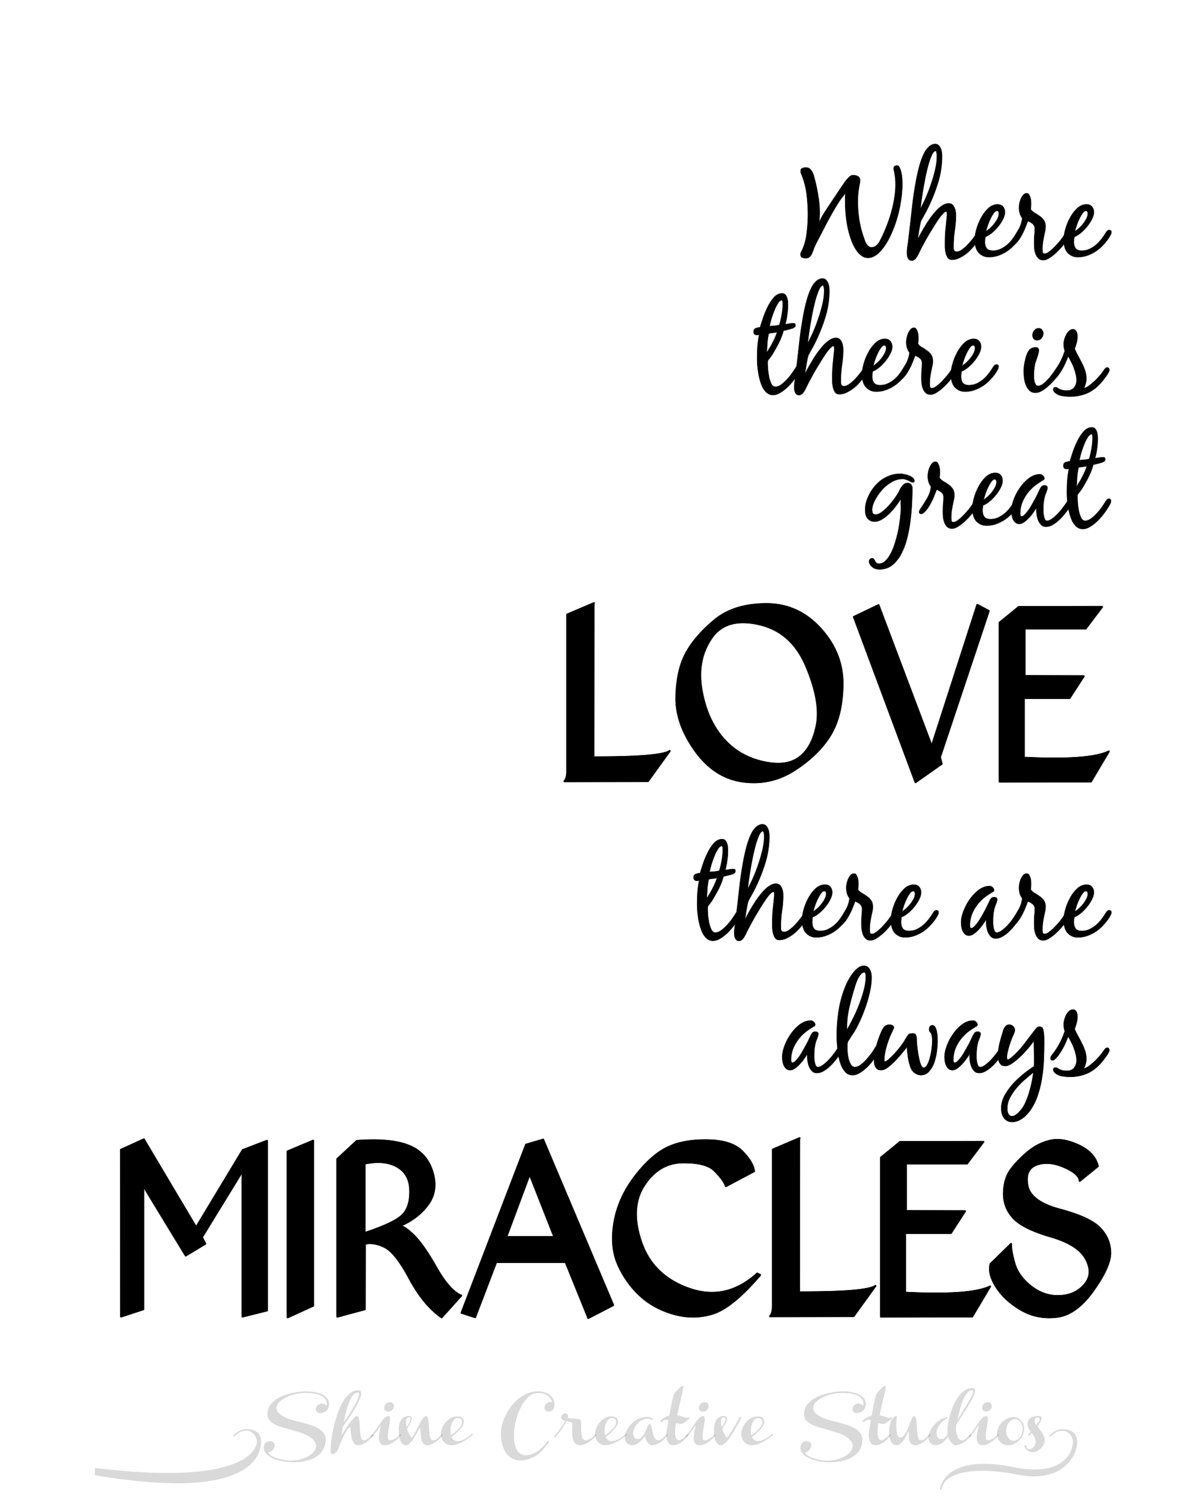 Miracle Quotes Unique Great Love Miracles Quote Wall Artshinecreativestudios $450